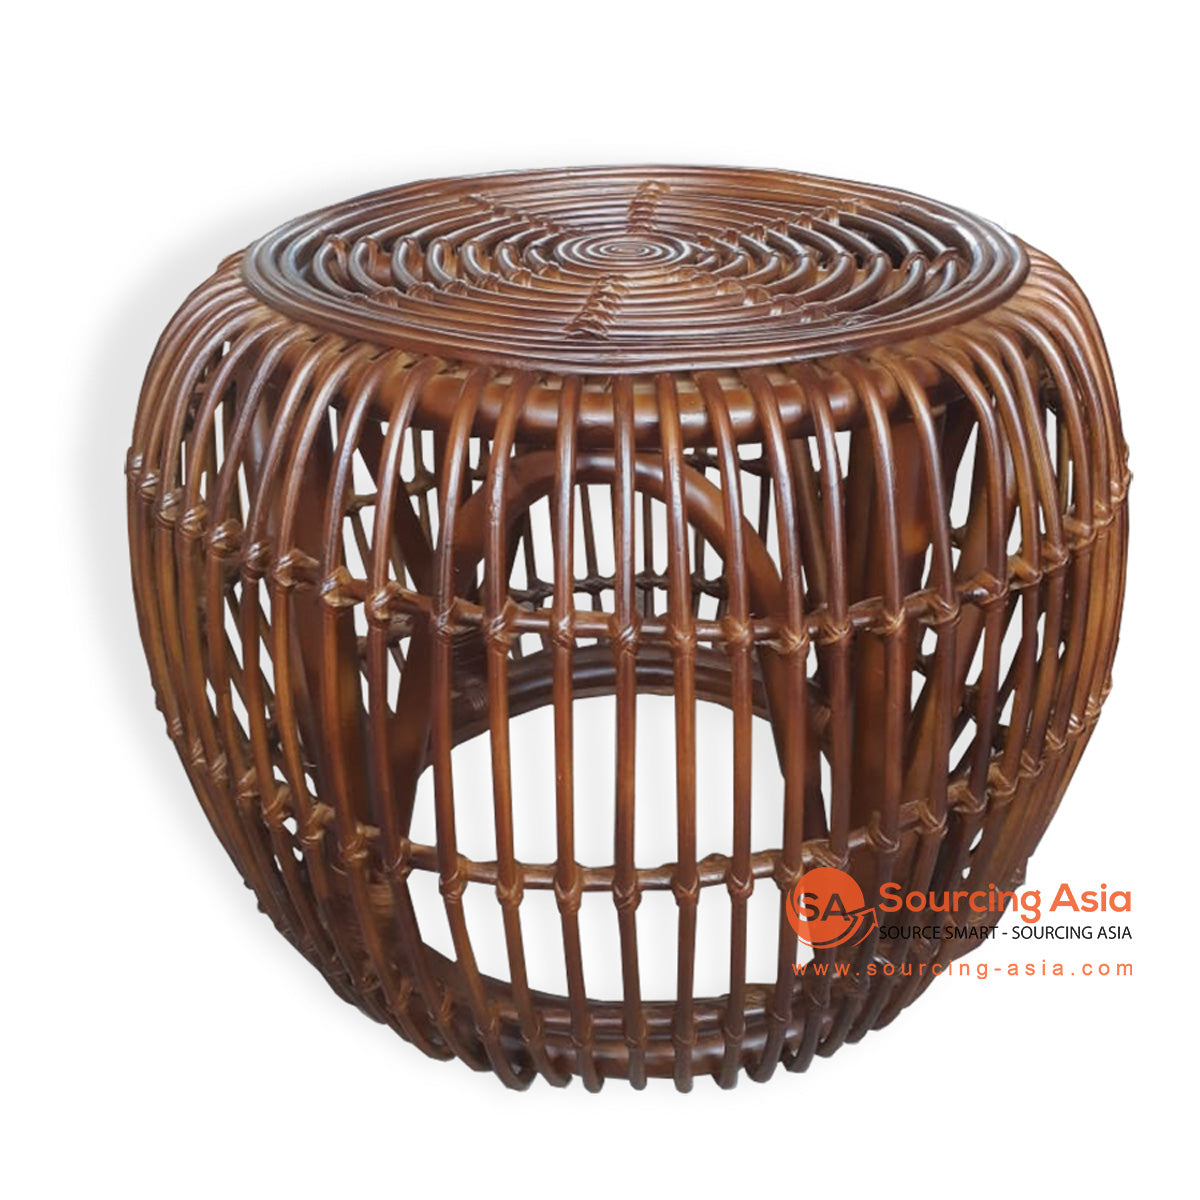 BNT198-2 RATTAN SIDE TABLE